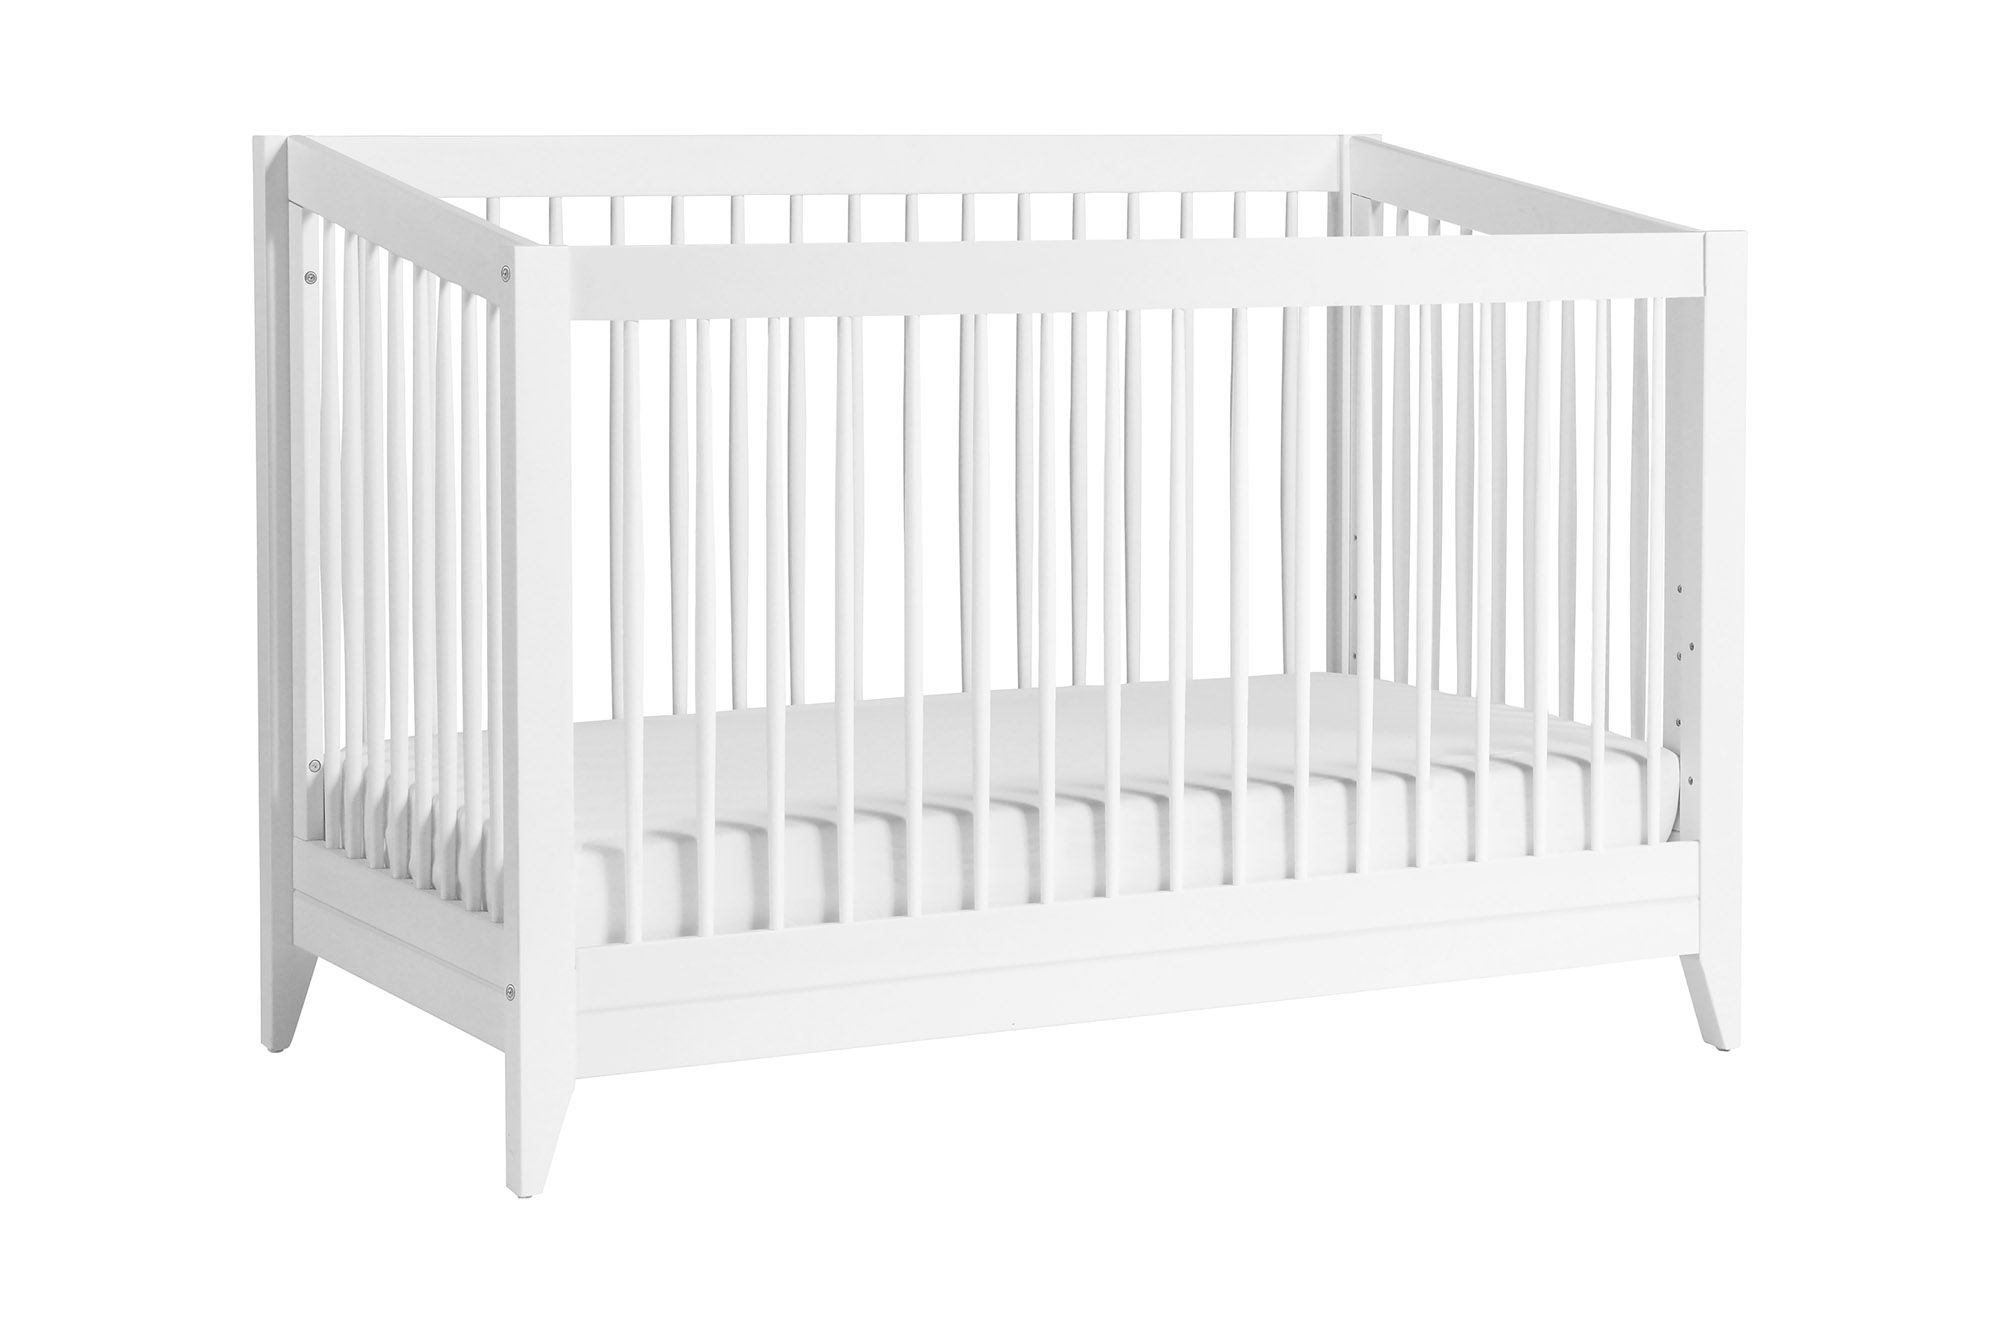 itm crib babyletto cribs conversion kit modo davinci porter with rail bed toddler convertible in